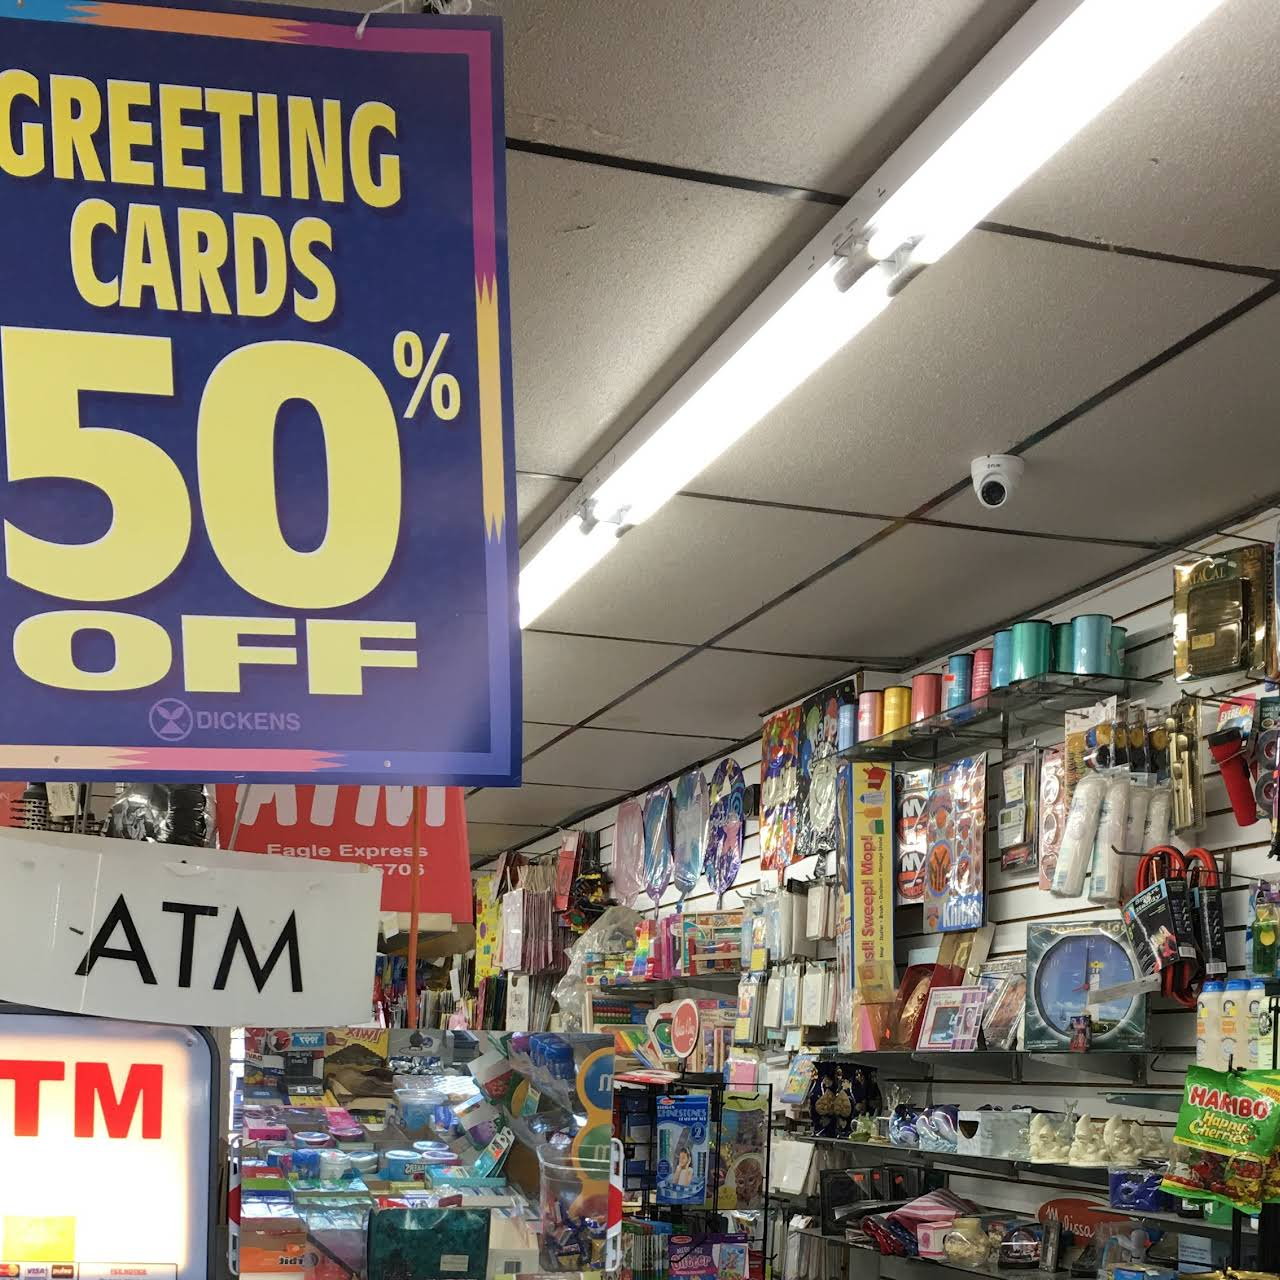 Village Card Shoppe Greeting Card Shop In Malverne